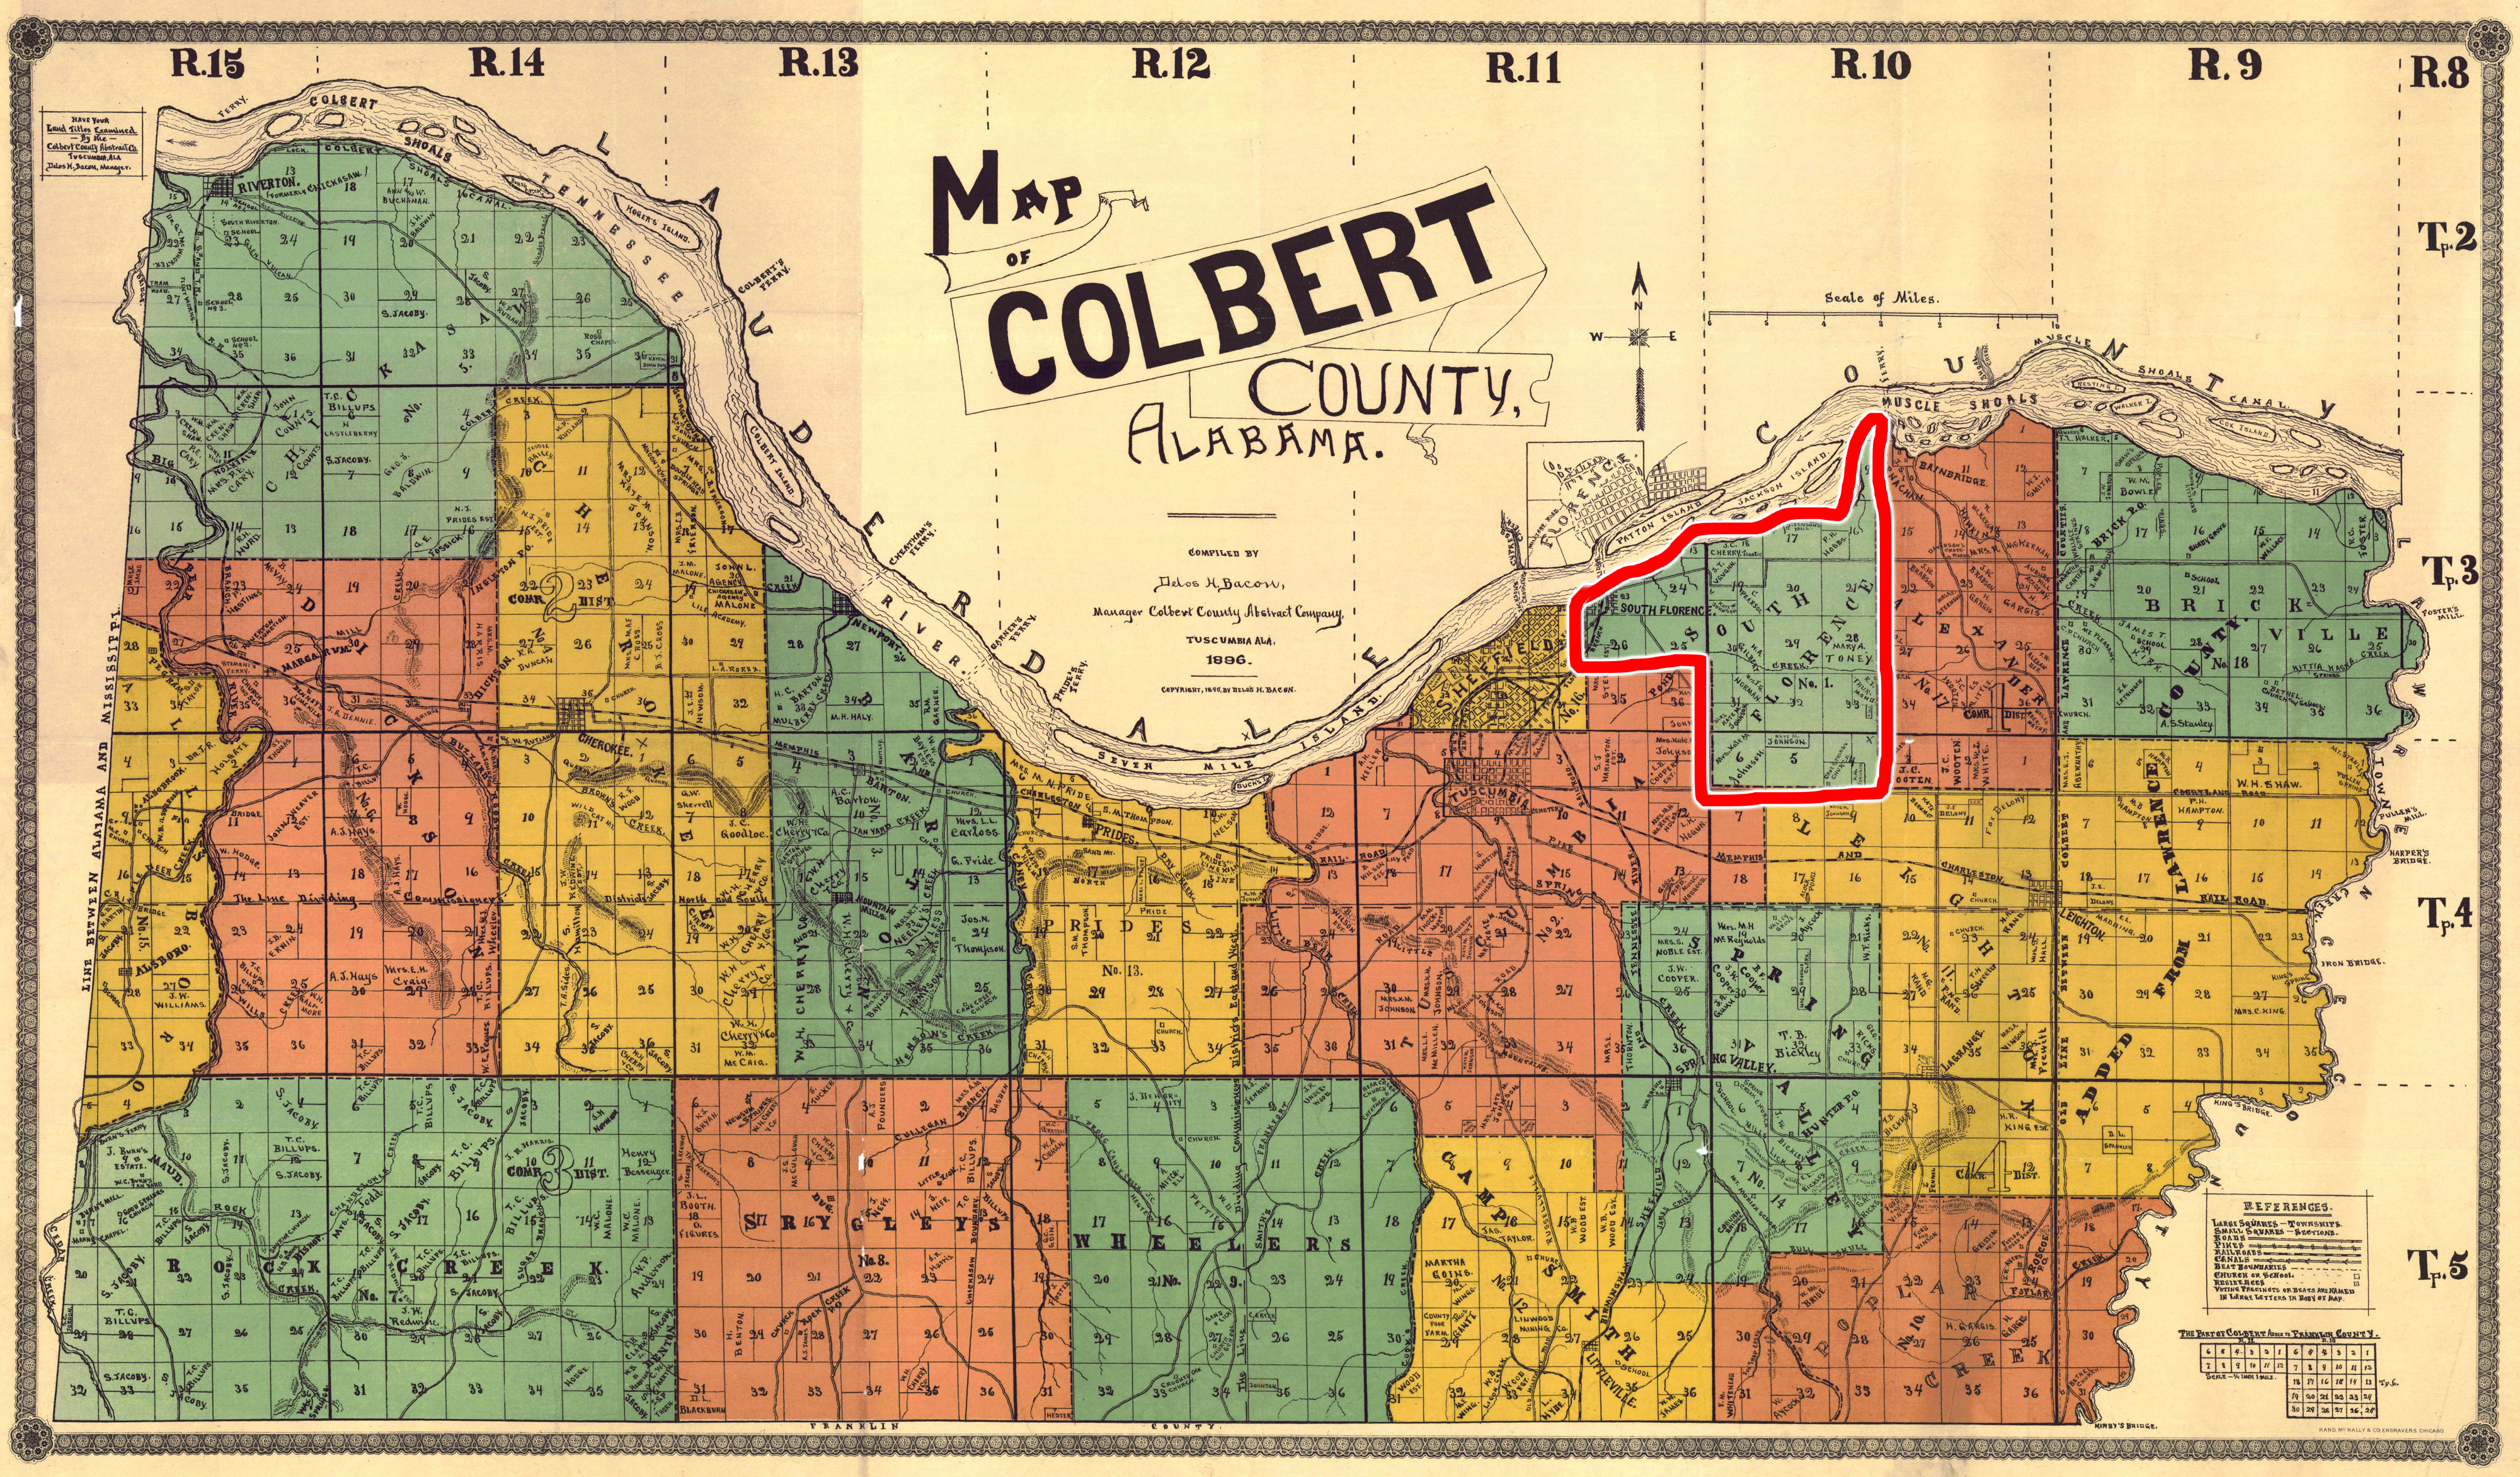 Colbert County Map Shows A South Florence Alabama - County map of alabama